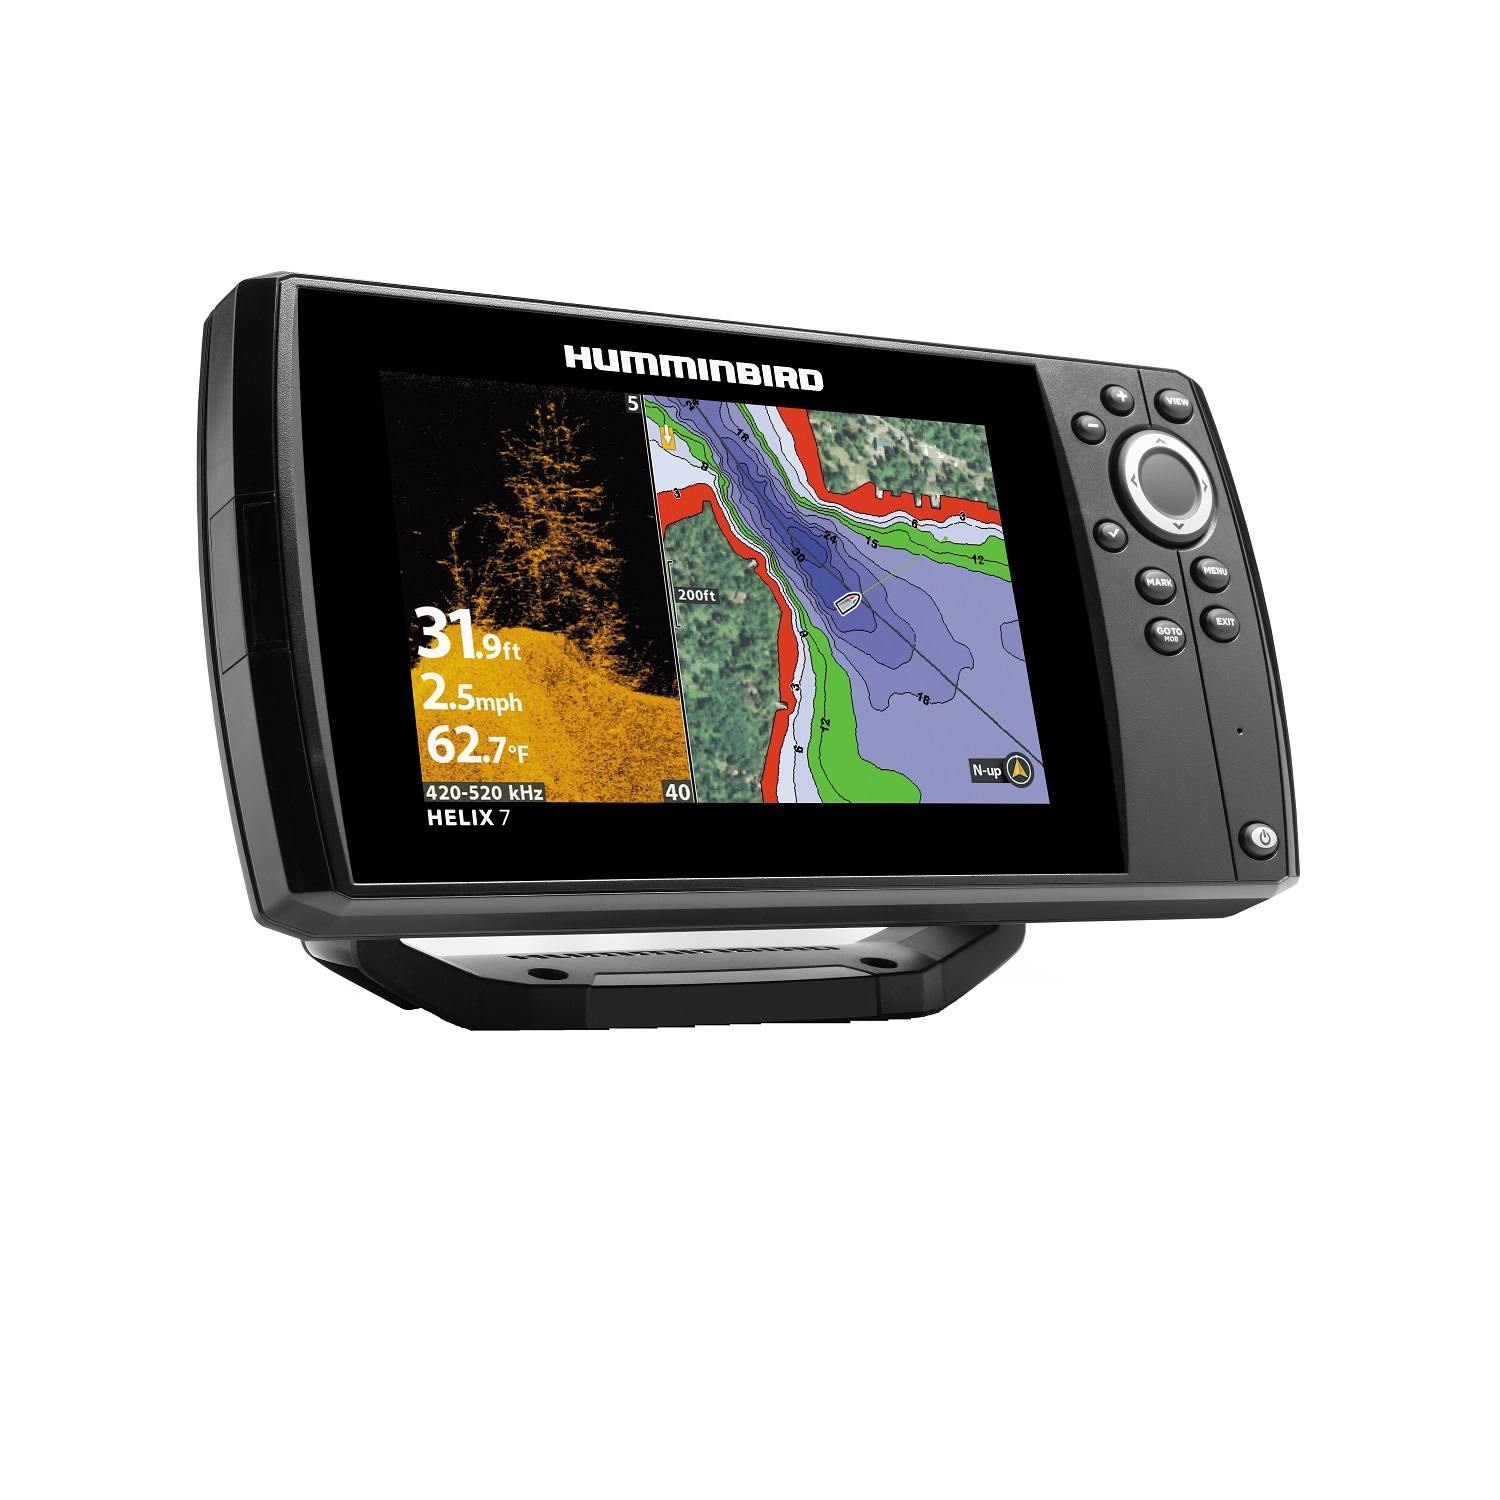 Humminbird Helix 7 CHIRP DI GPS G2 by Johnson Outdoors